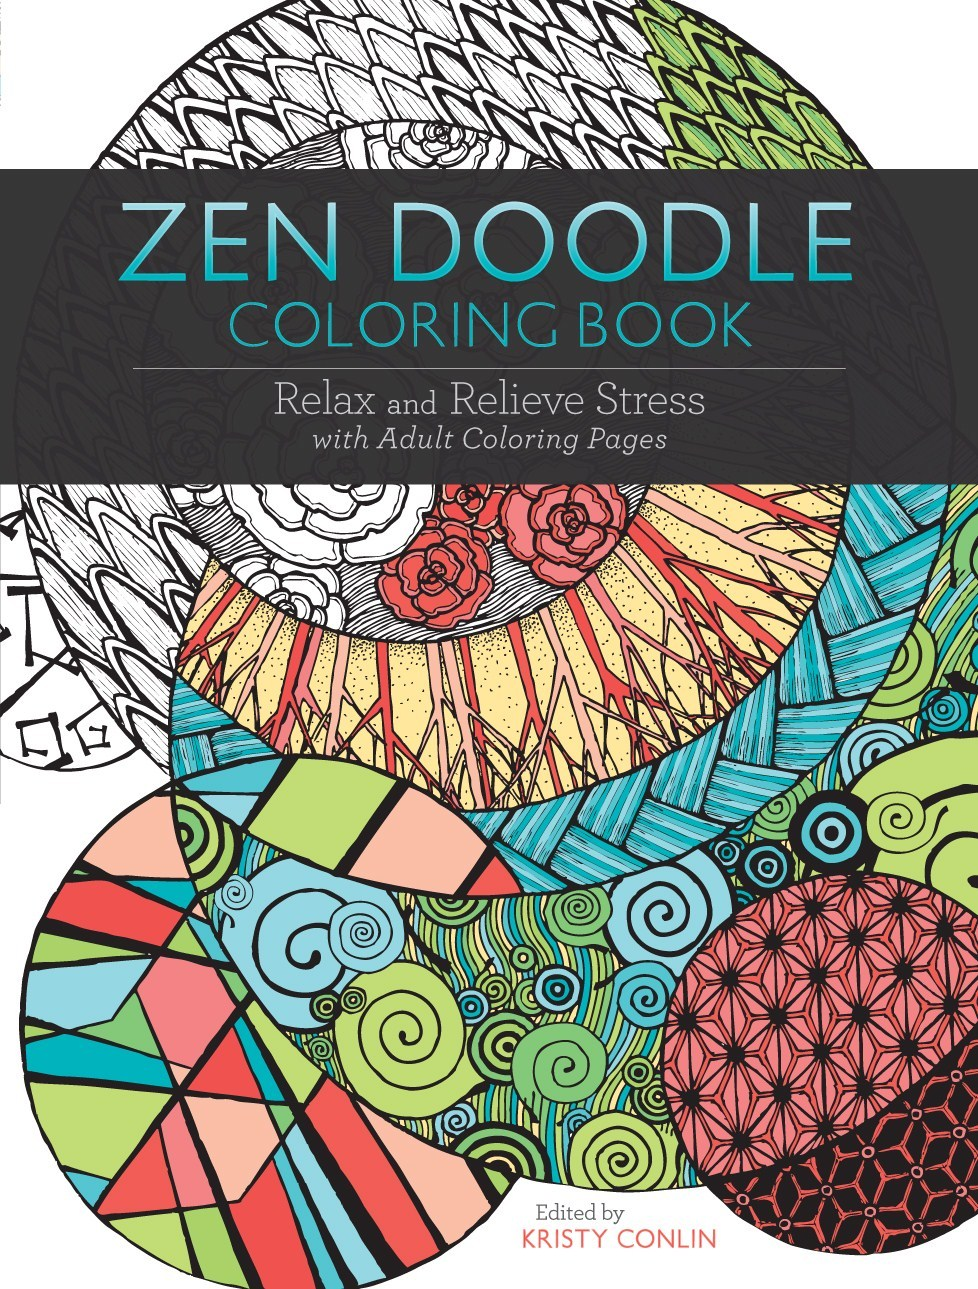 Creativity in an Imperfect World: Zen Doodle Coloring Book